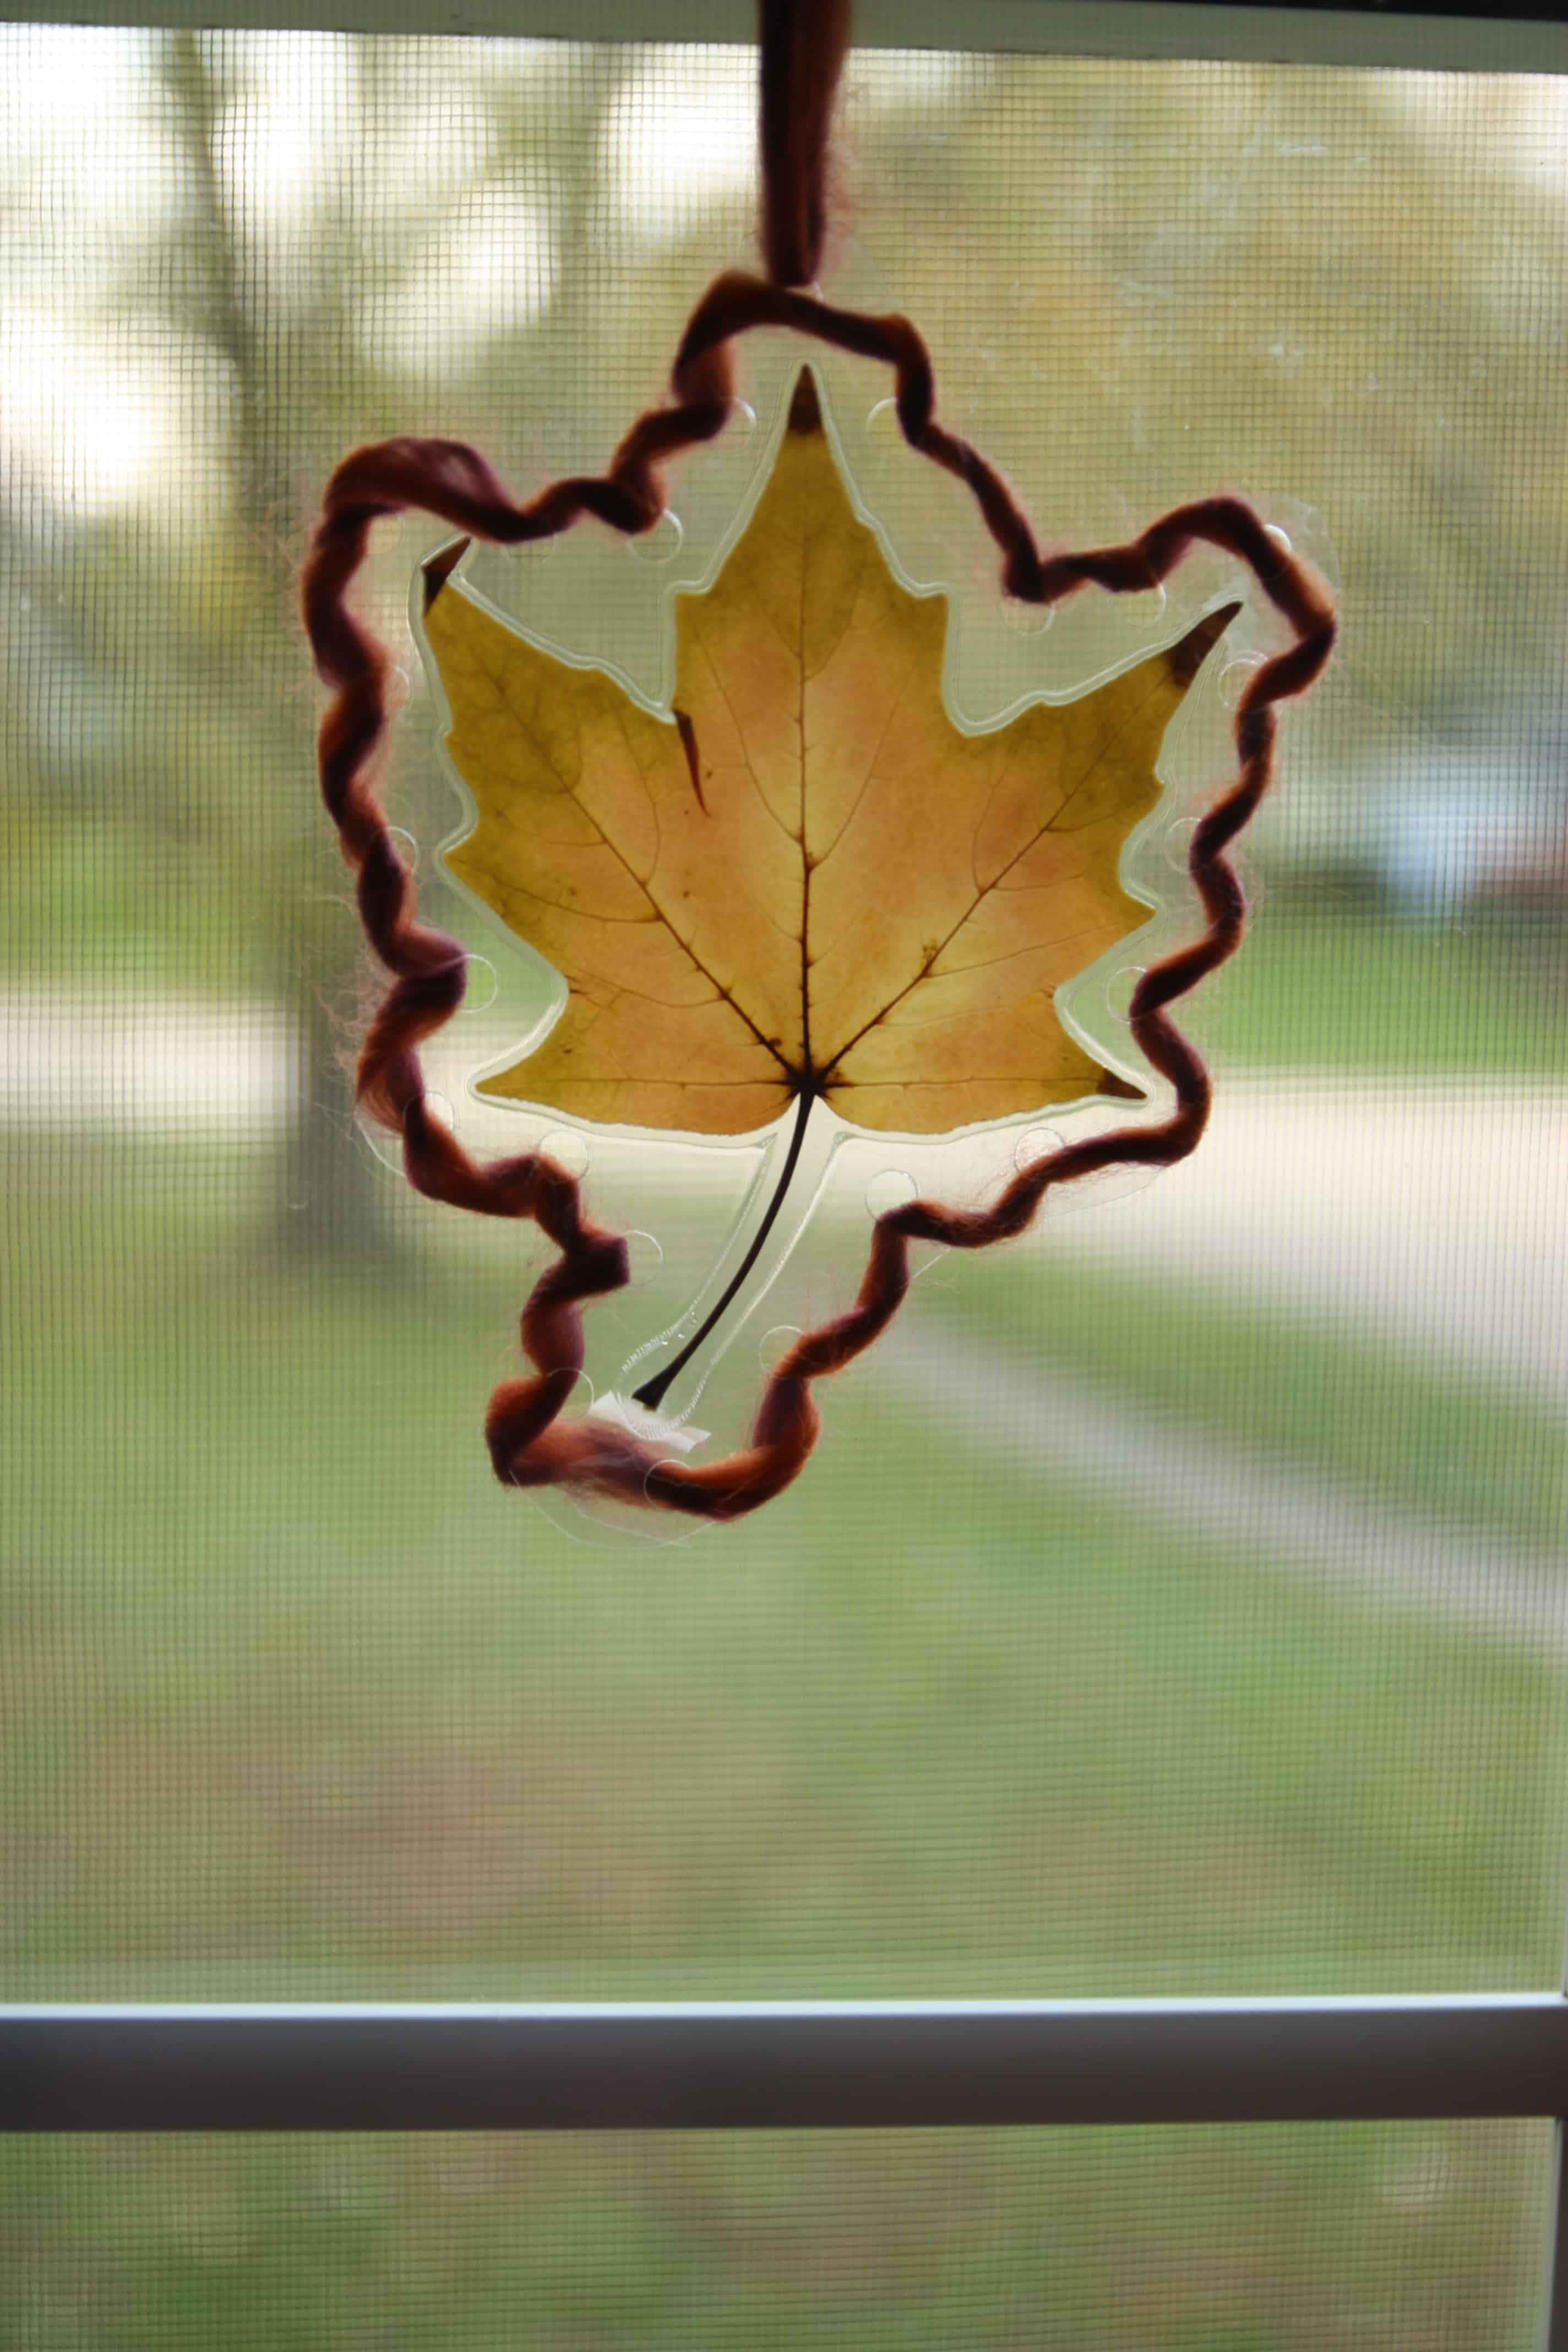 Toddler Leaf Lacing - I Can Teach My Child!